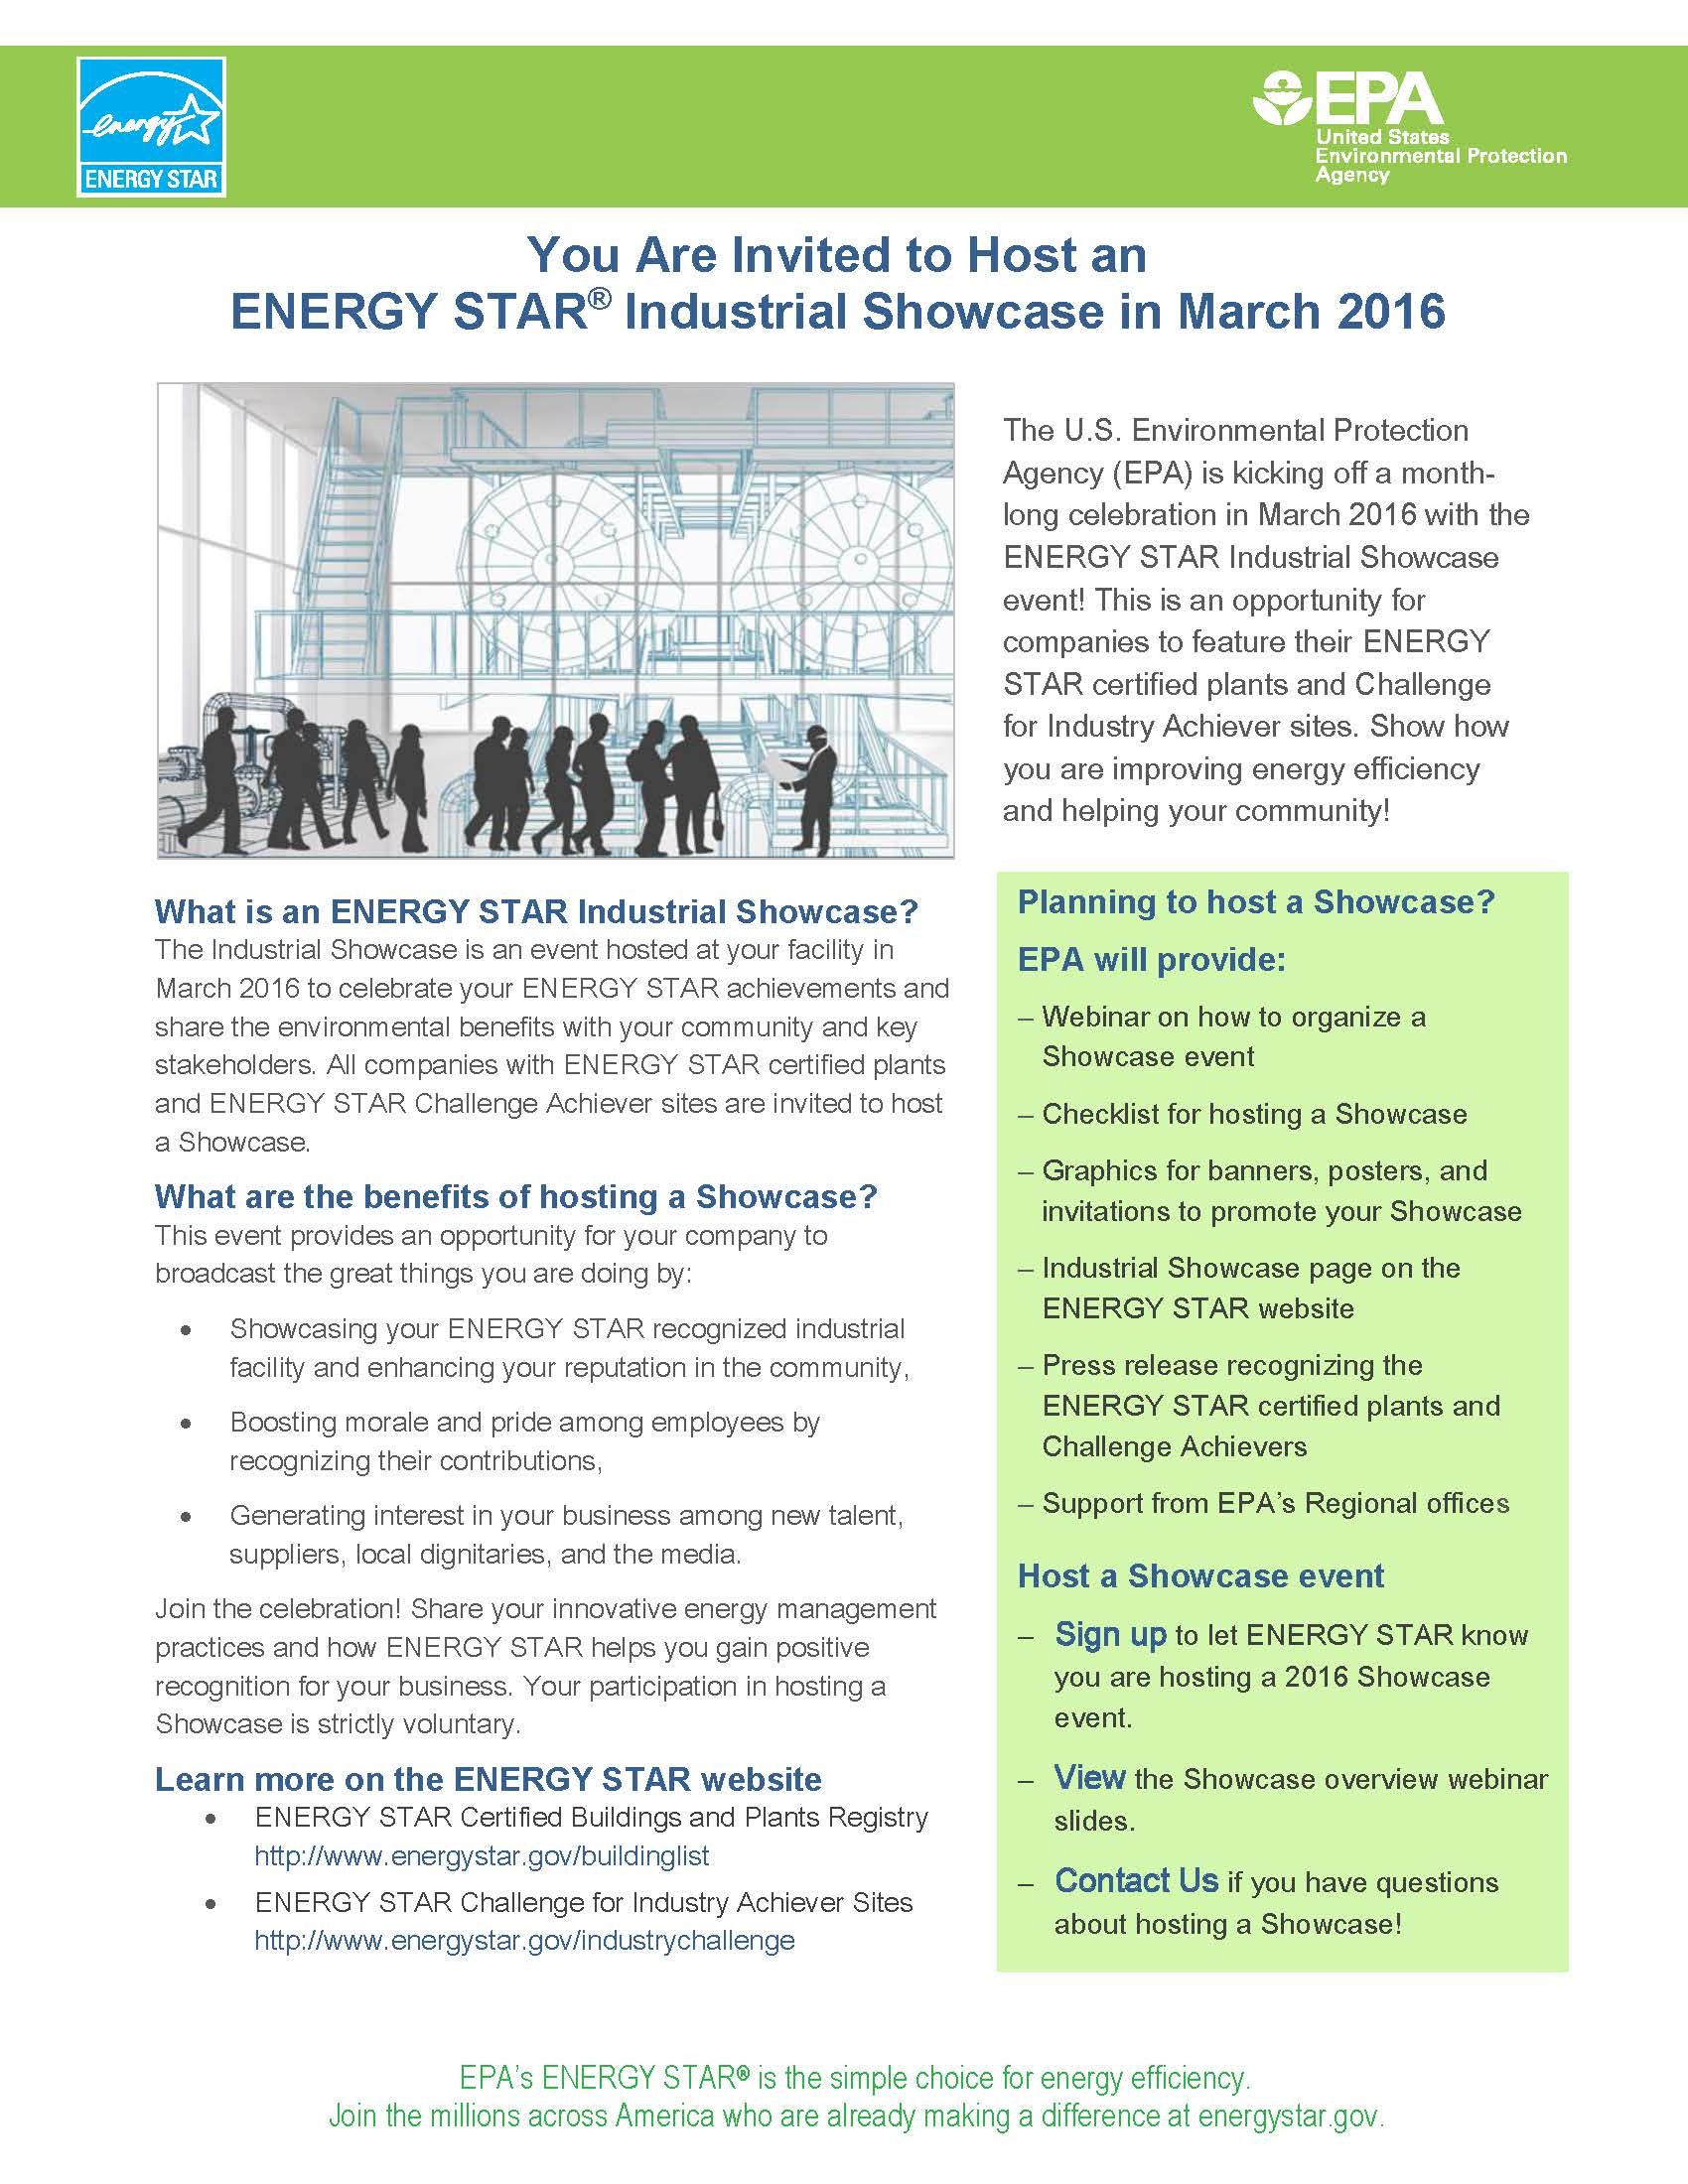 ENERGY STAR Industrial Showcase flyer thumbnail